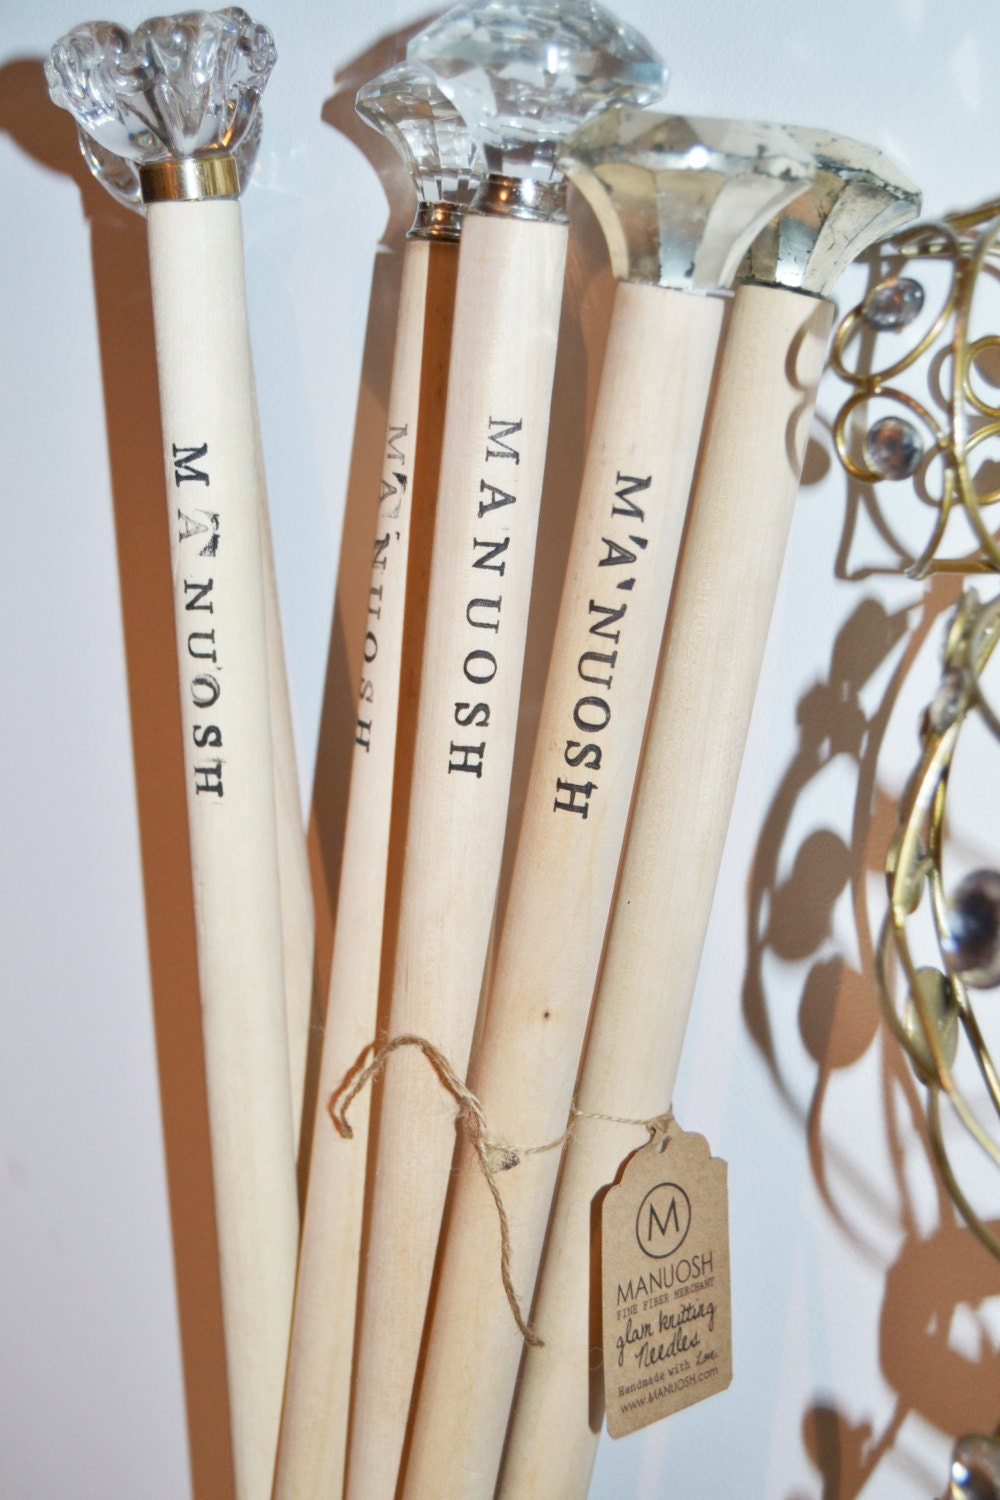 Wooden Knitting Needles : Glam Knitting Needles Large Giant Straight Wood Size by MANUOSH